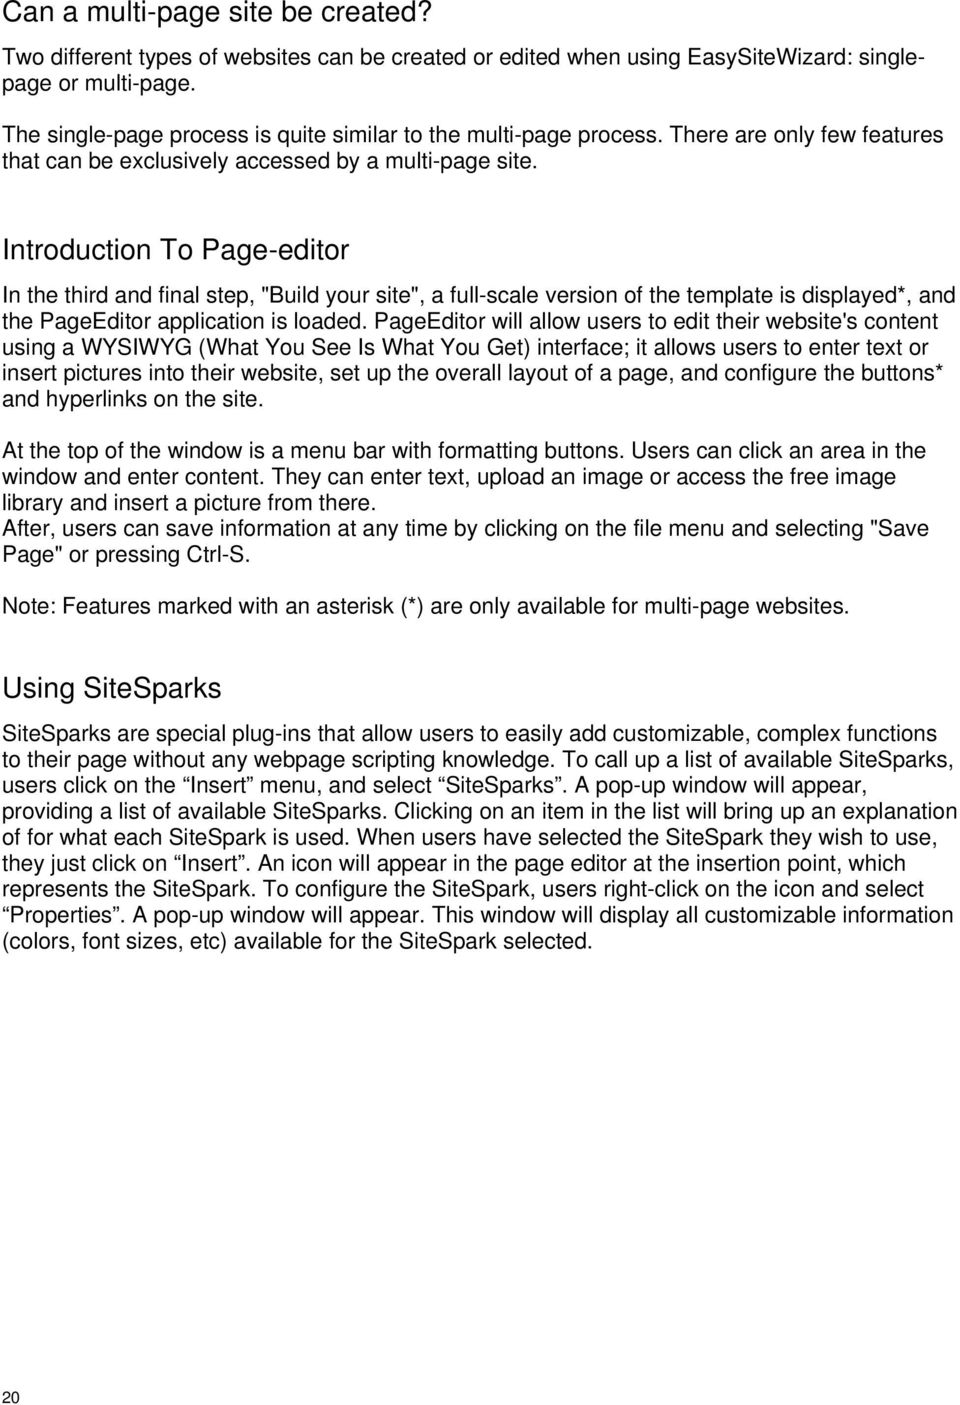 "Introduction To Page-editor In the third and final step, ""Build your site"", a full-scale version of the template is displayed*, and the PageEditor application is loaded."